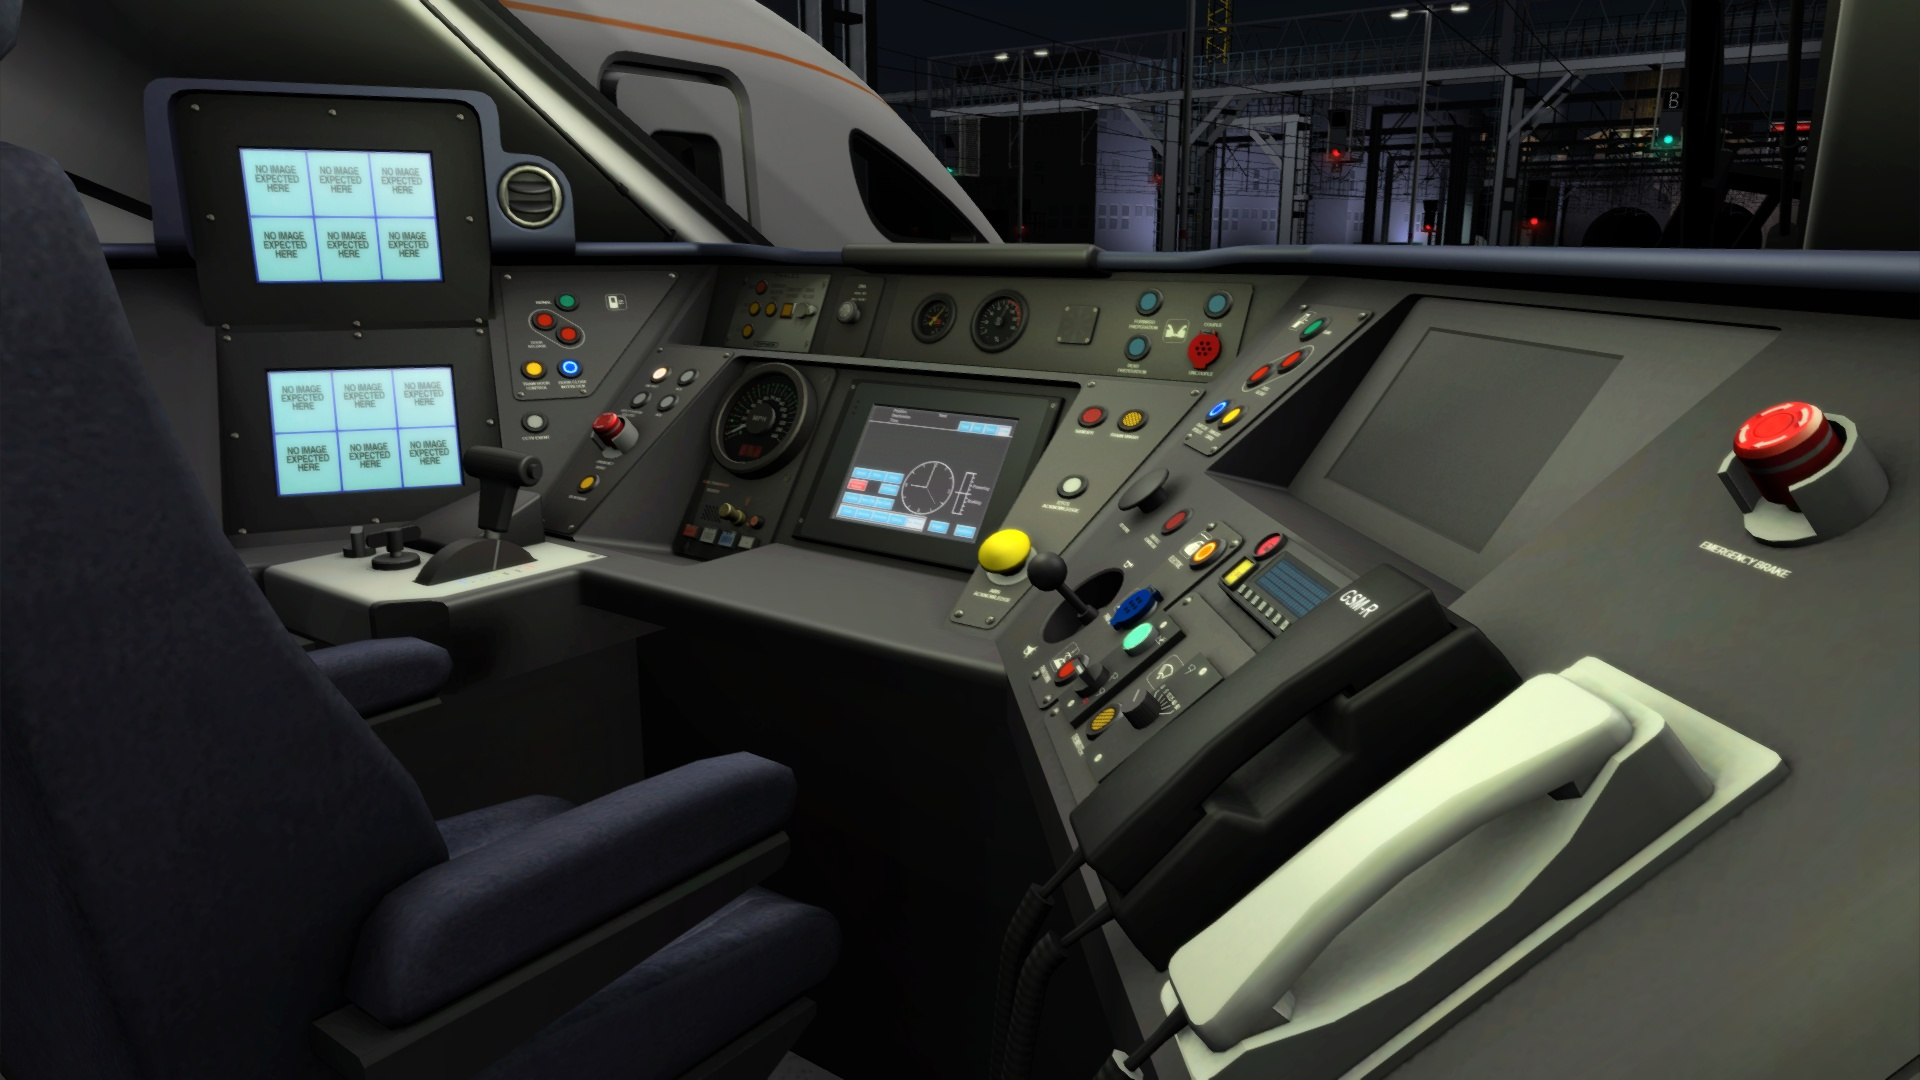 Train Simulator 2015 au départ_Screenshot_ECML London - Peterborough_51.53330--0.12306_21-00-22